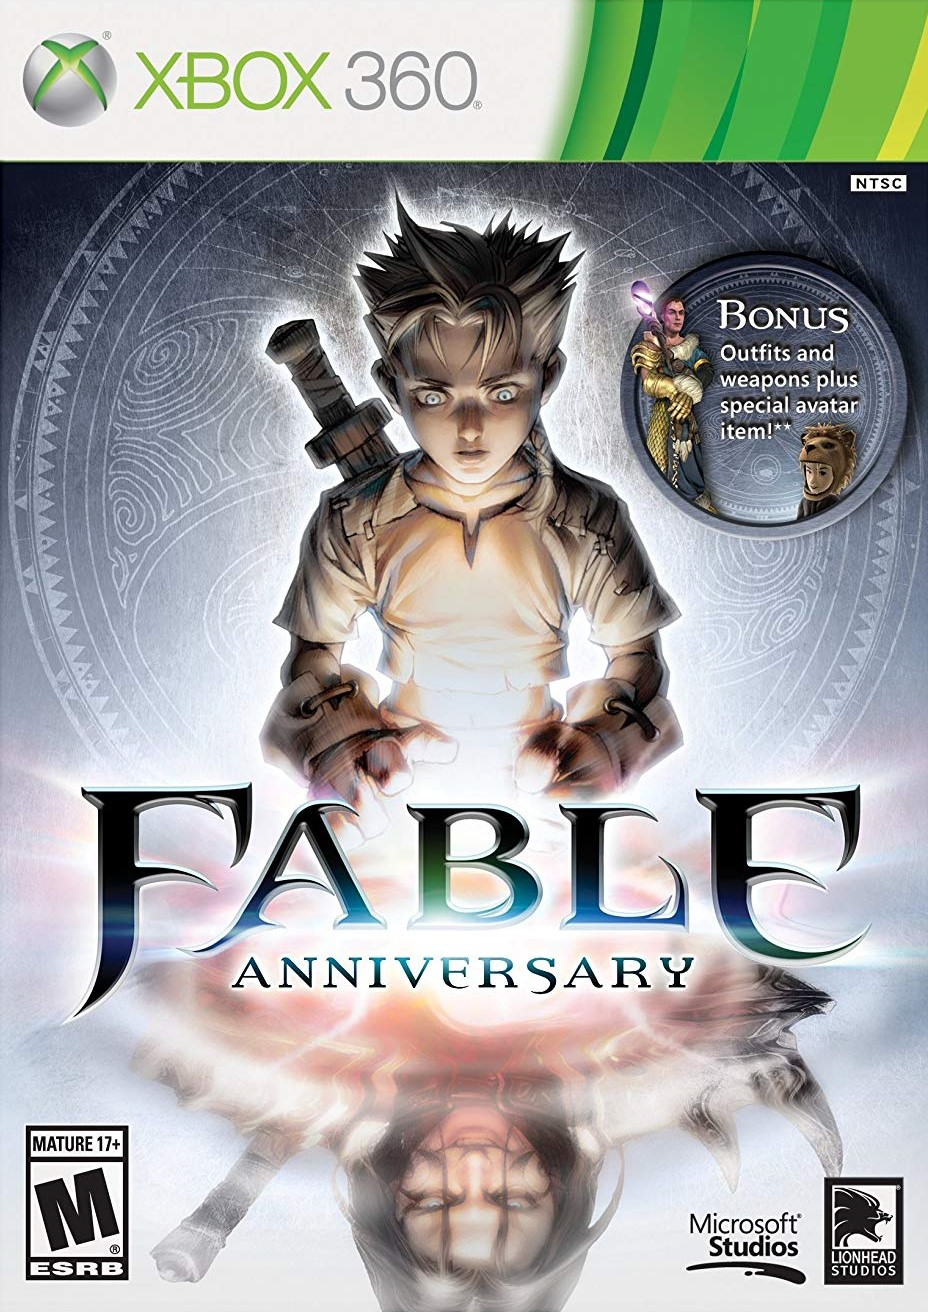 Fable Anniversary | The Fable Wiki | FANDOM powered by Wikia